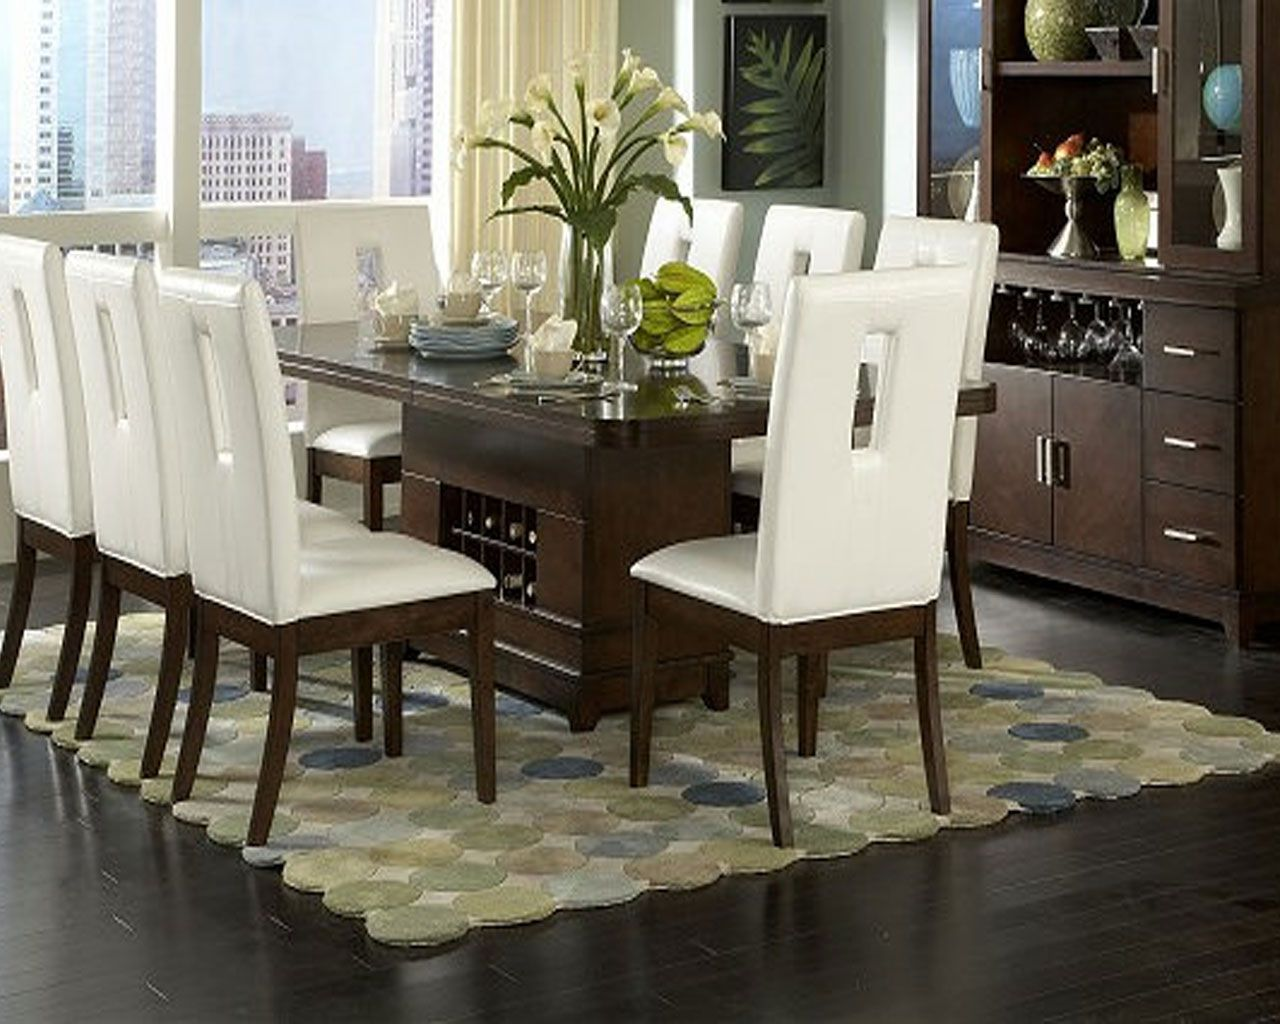 Formal dining room design ideas  Pin by INGA on DESIGN STYLE  Pinterest  Dining room table